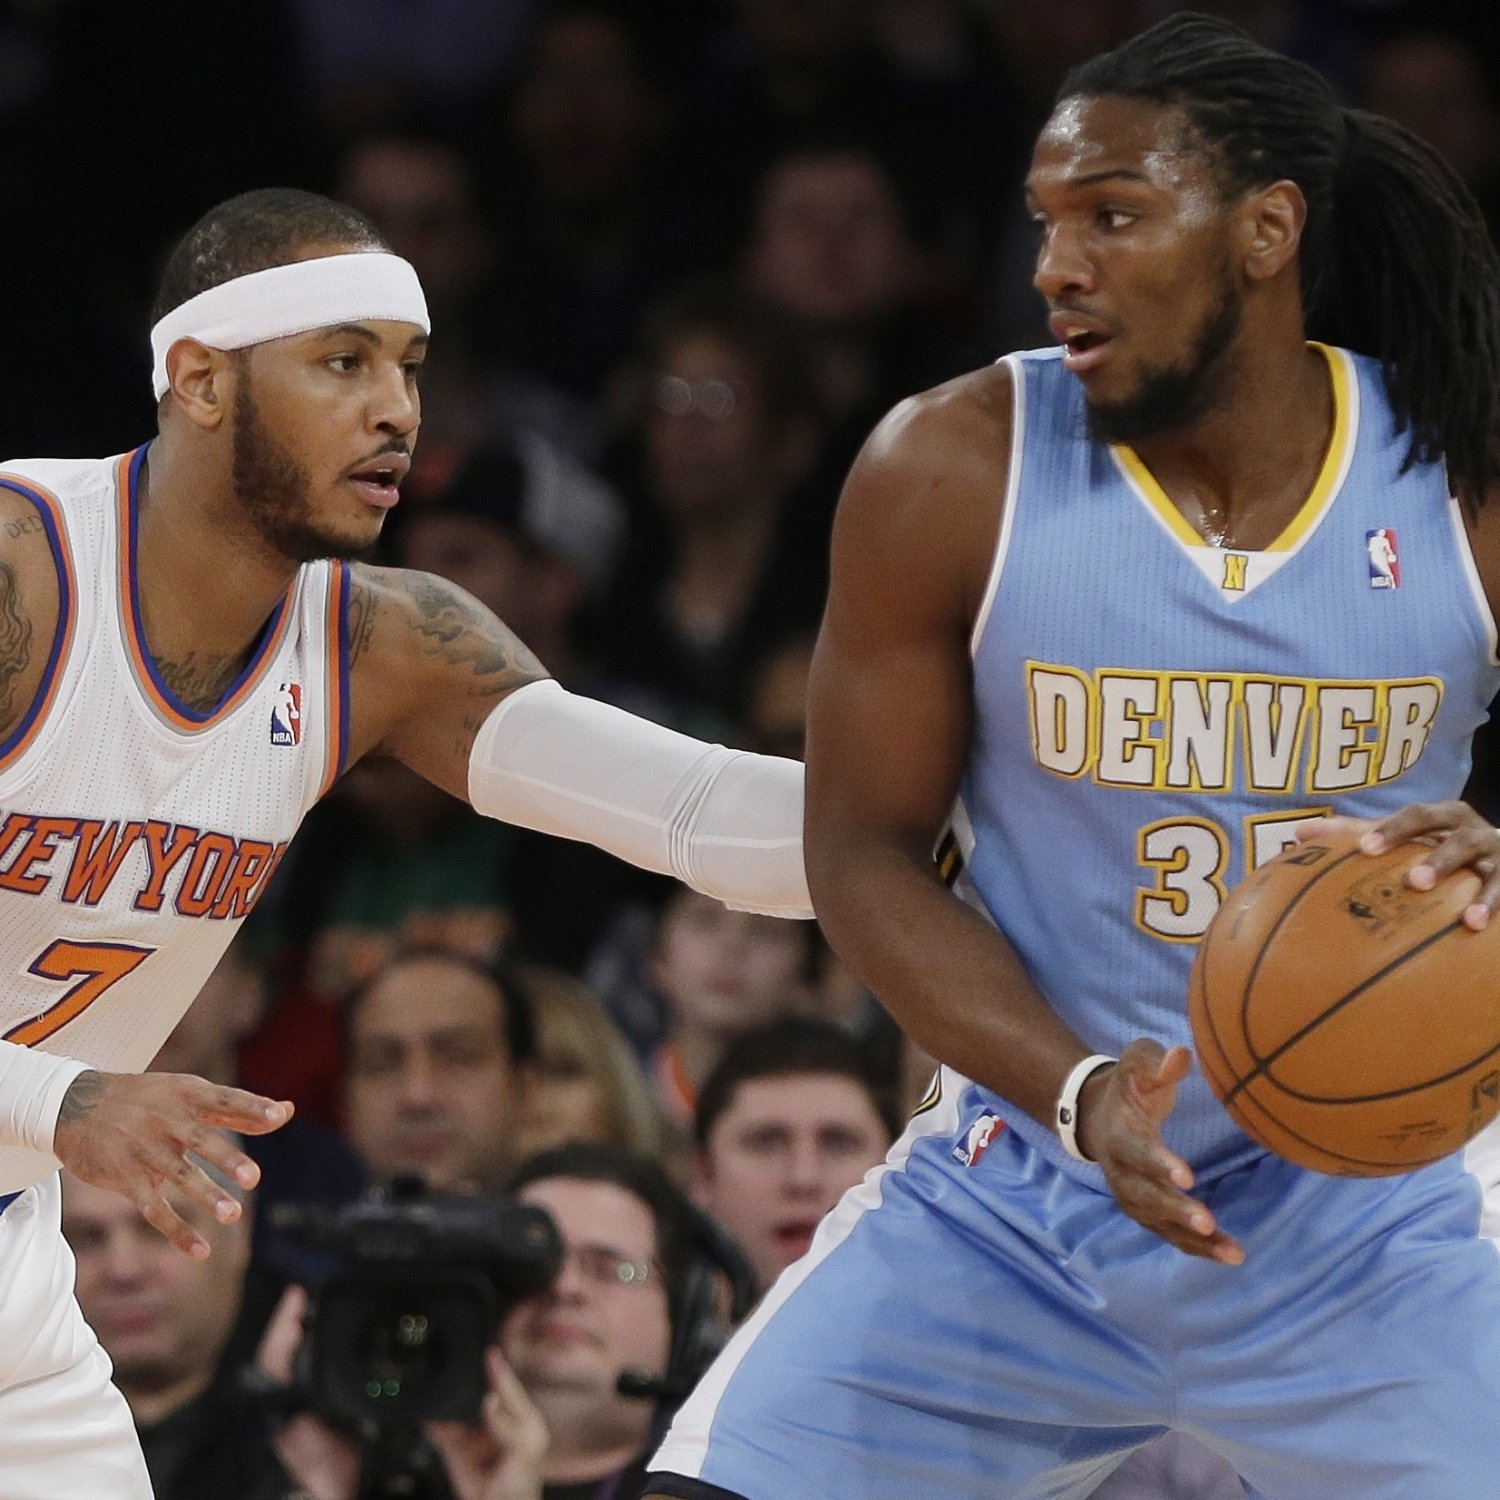 Toronto Raptors Reportedly Interested In Kenneth Faried